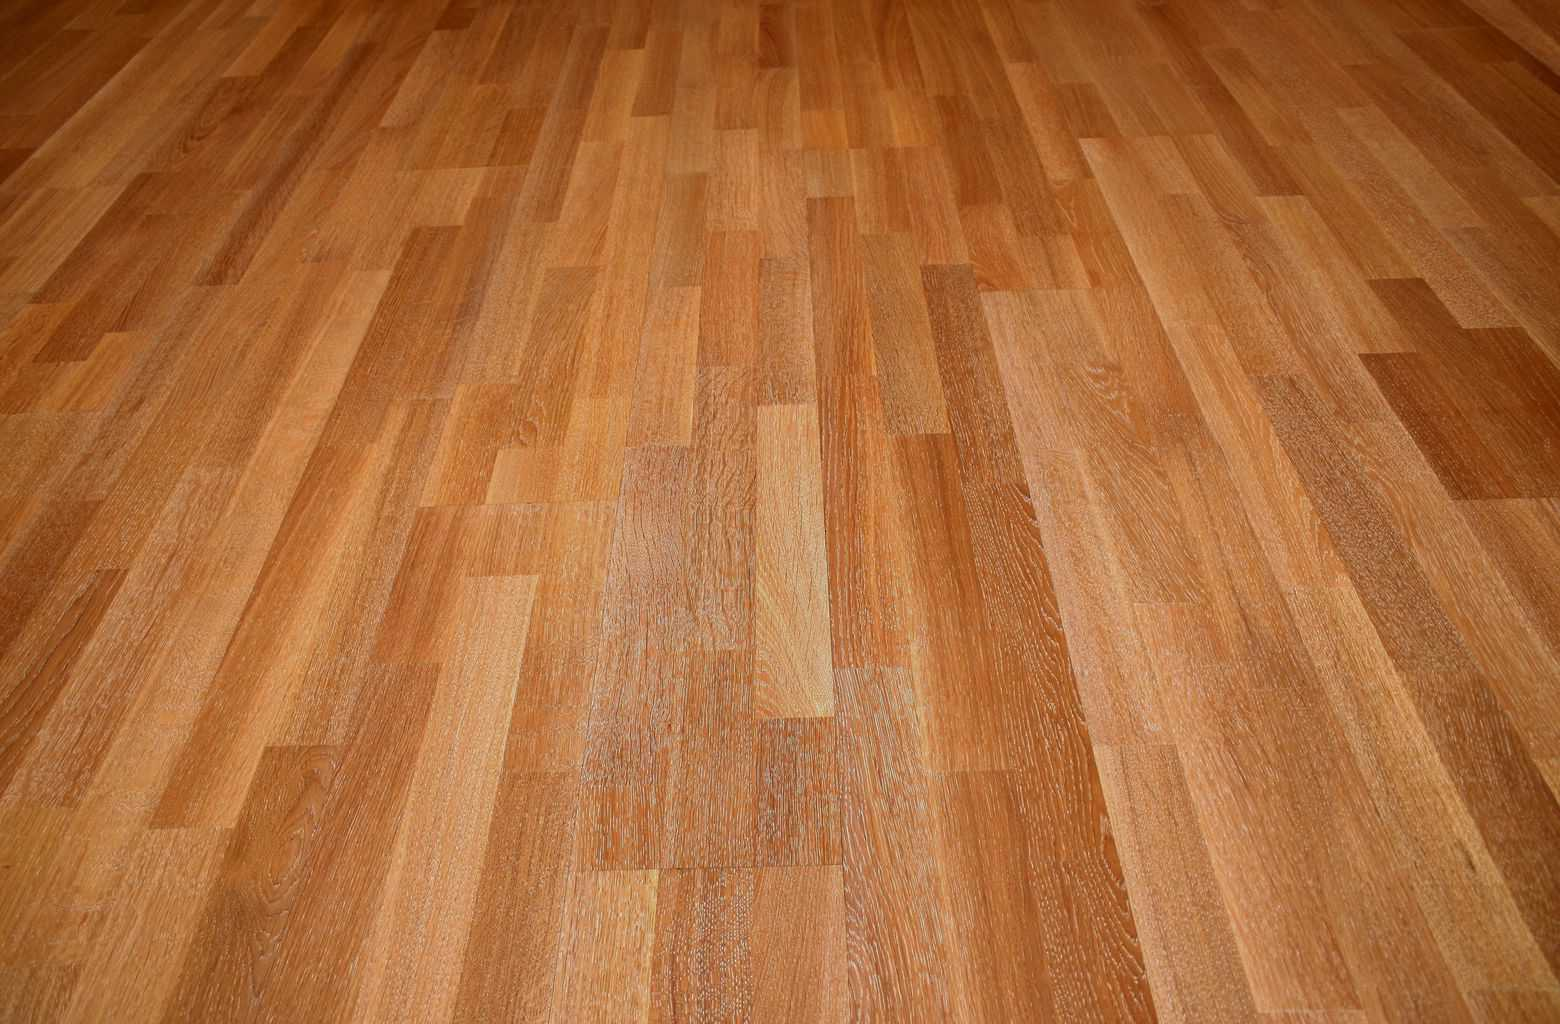 Types of laminate flooring options oak walnut pine - Laminate or wood flooring ...